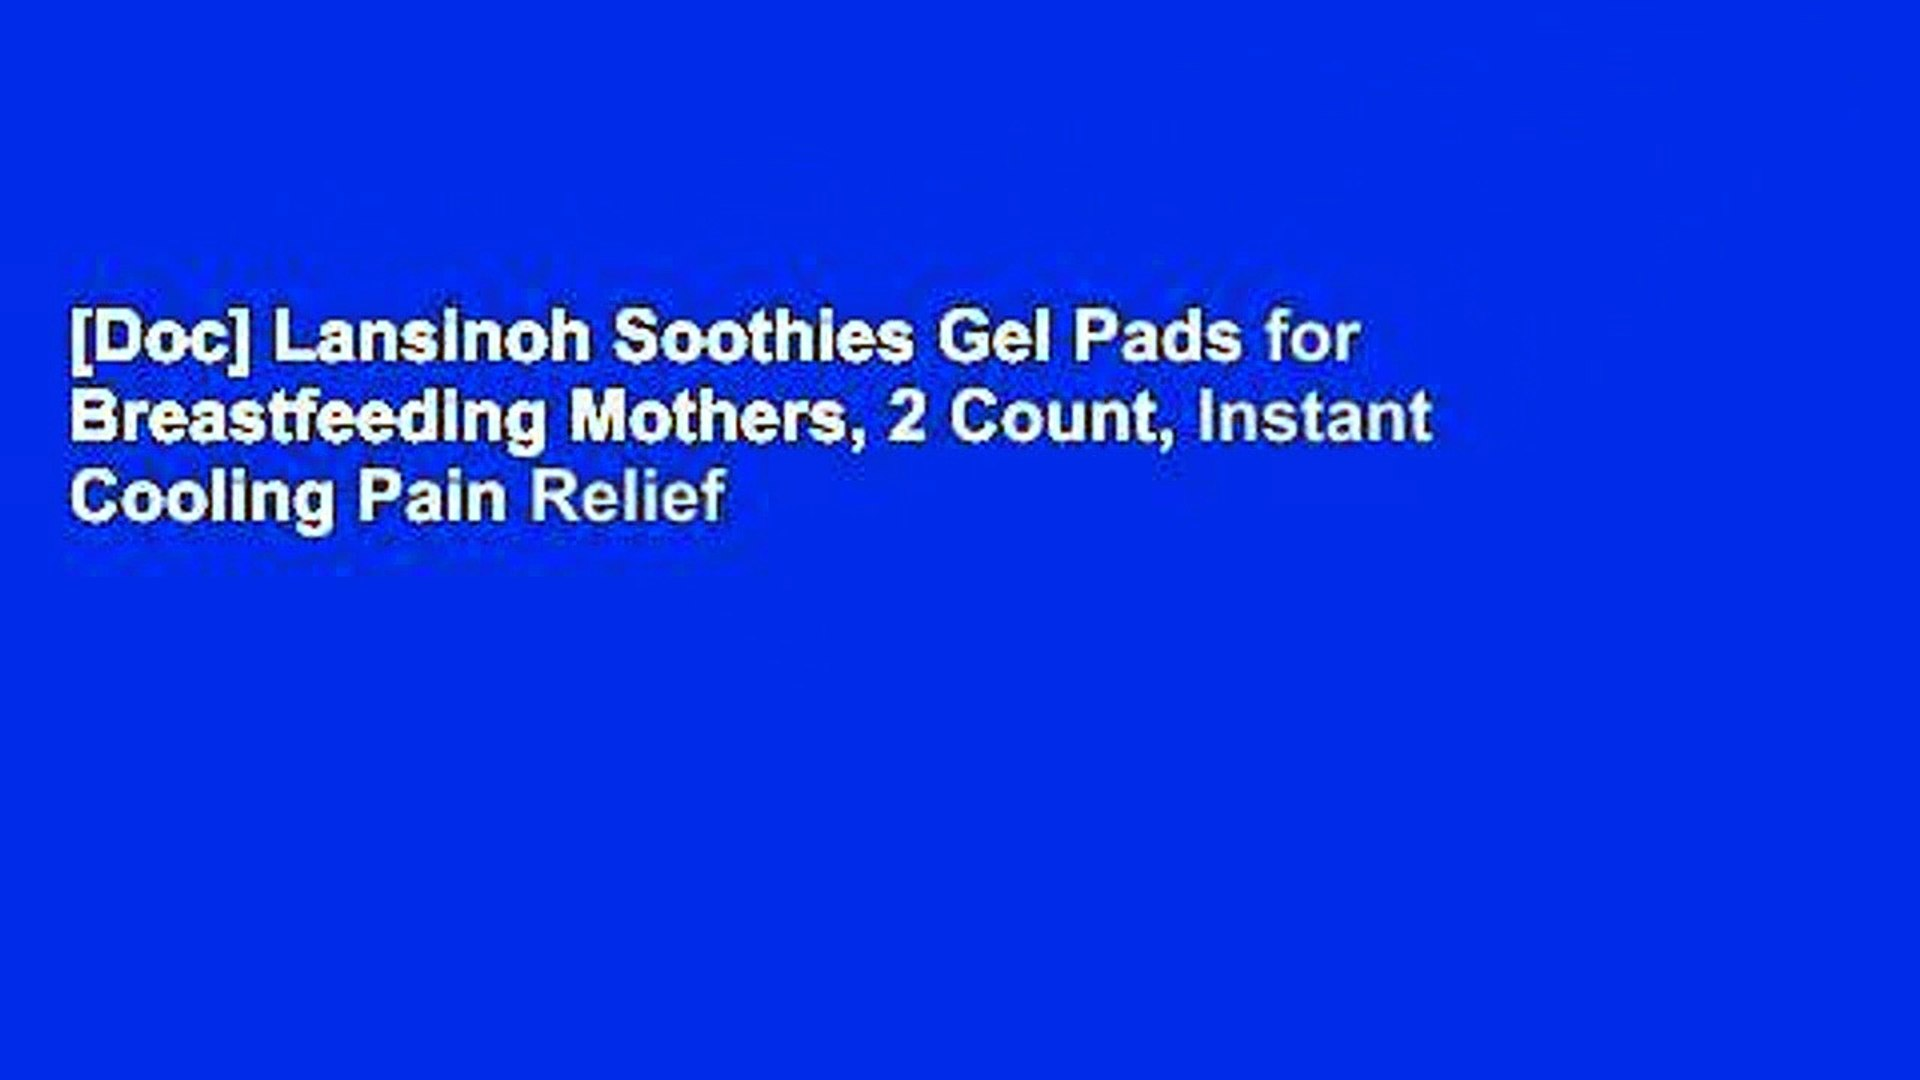 Lansinoh Soothies Gel Pads for Breastfeeding Mothers 2 Count